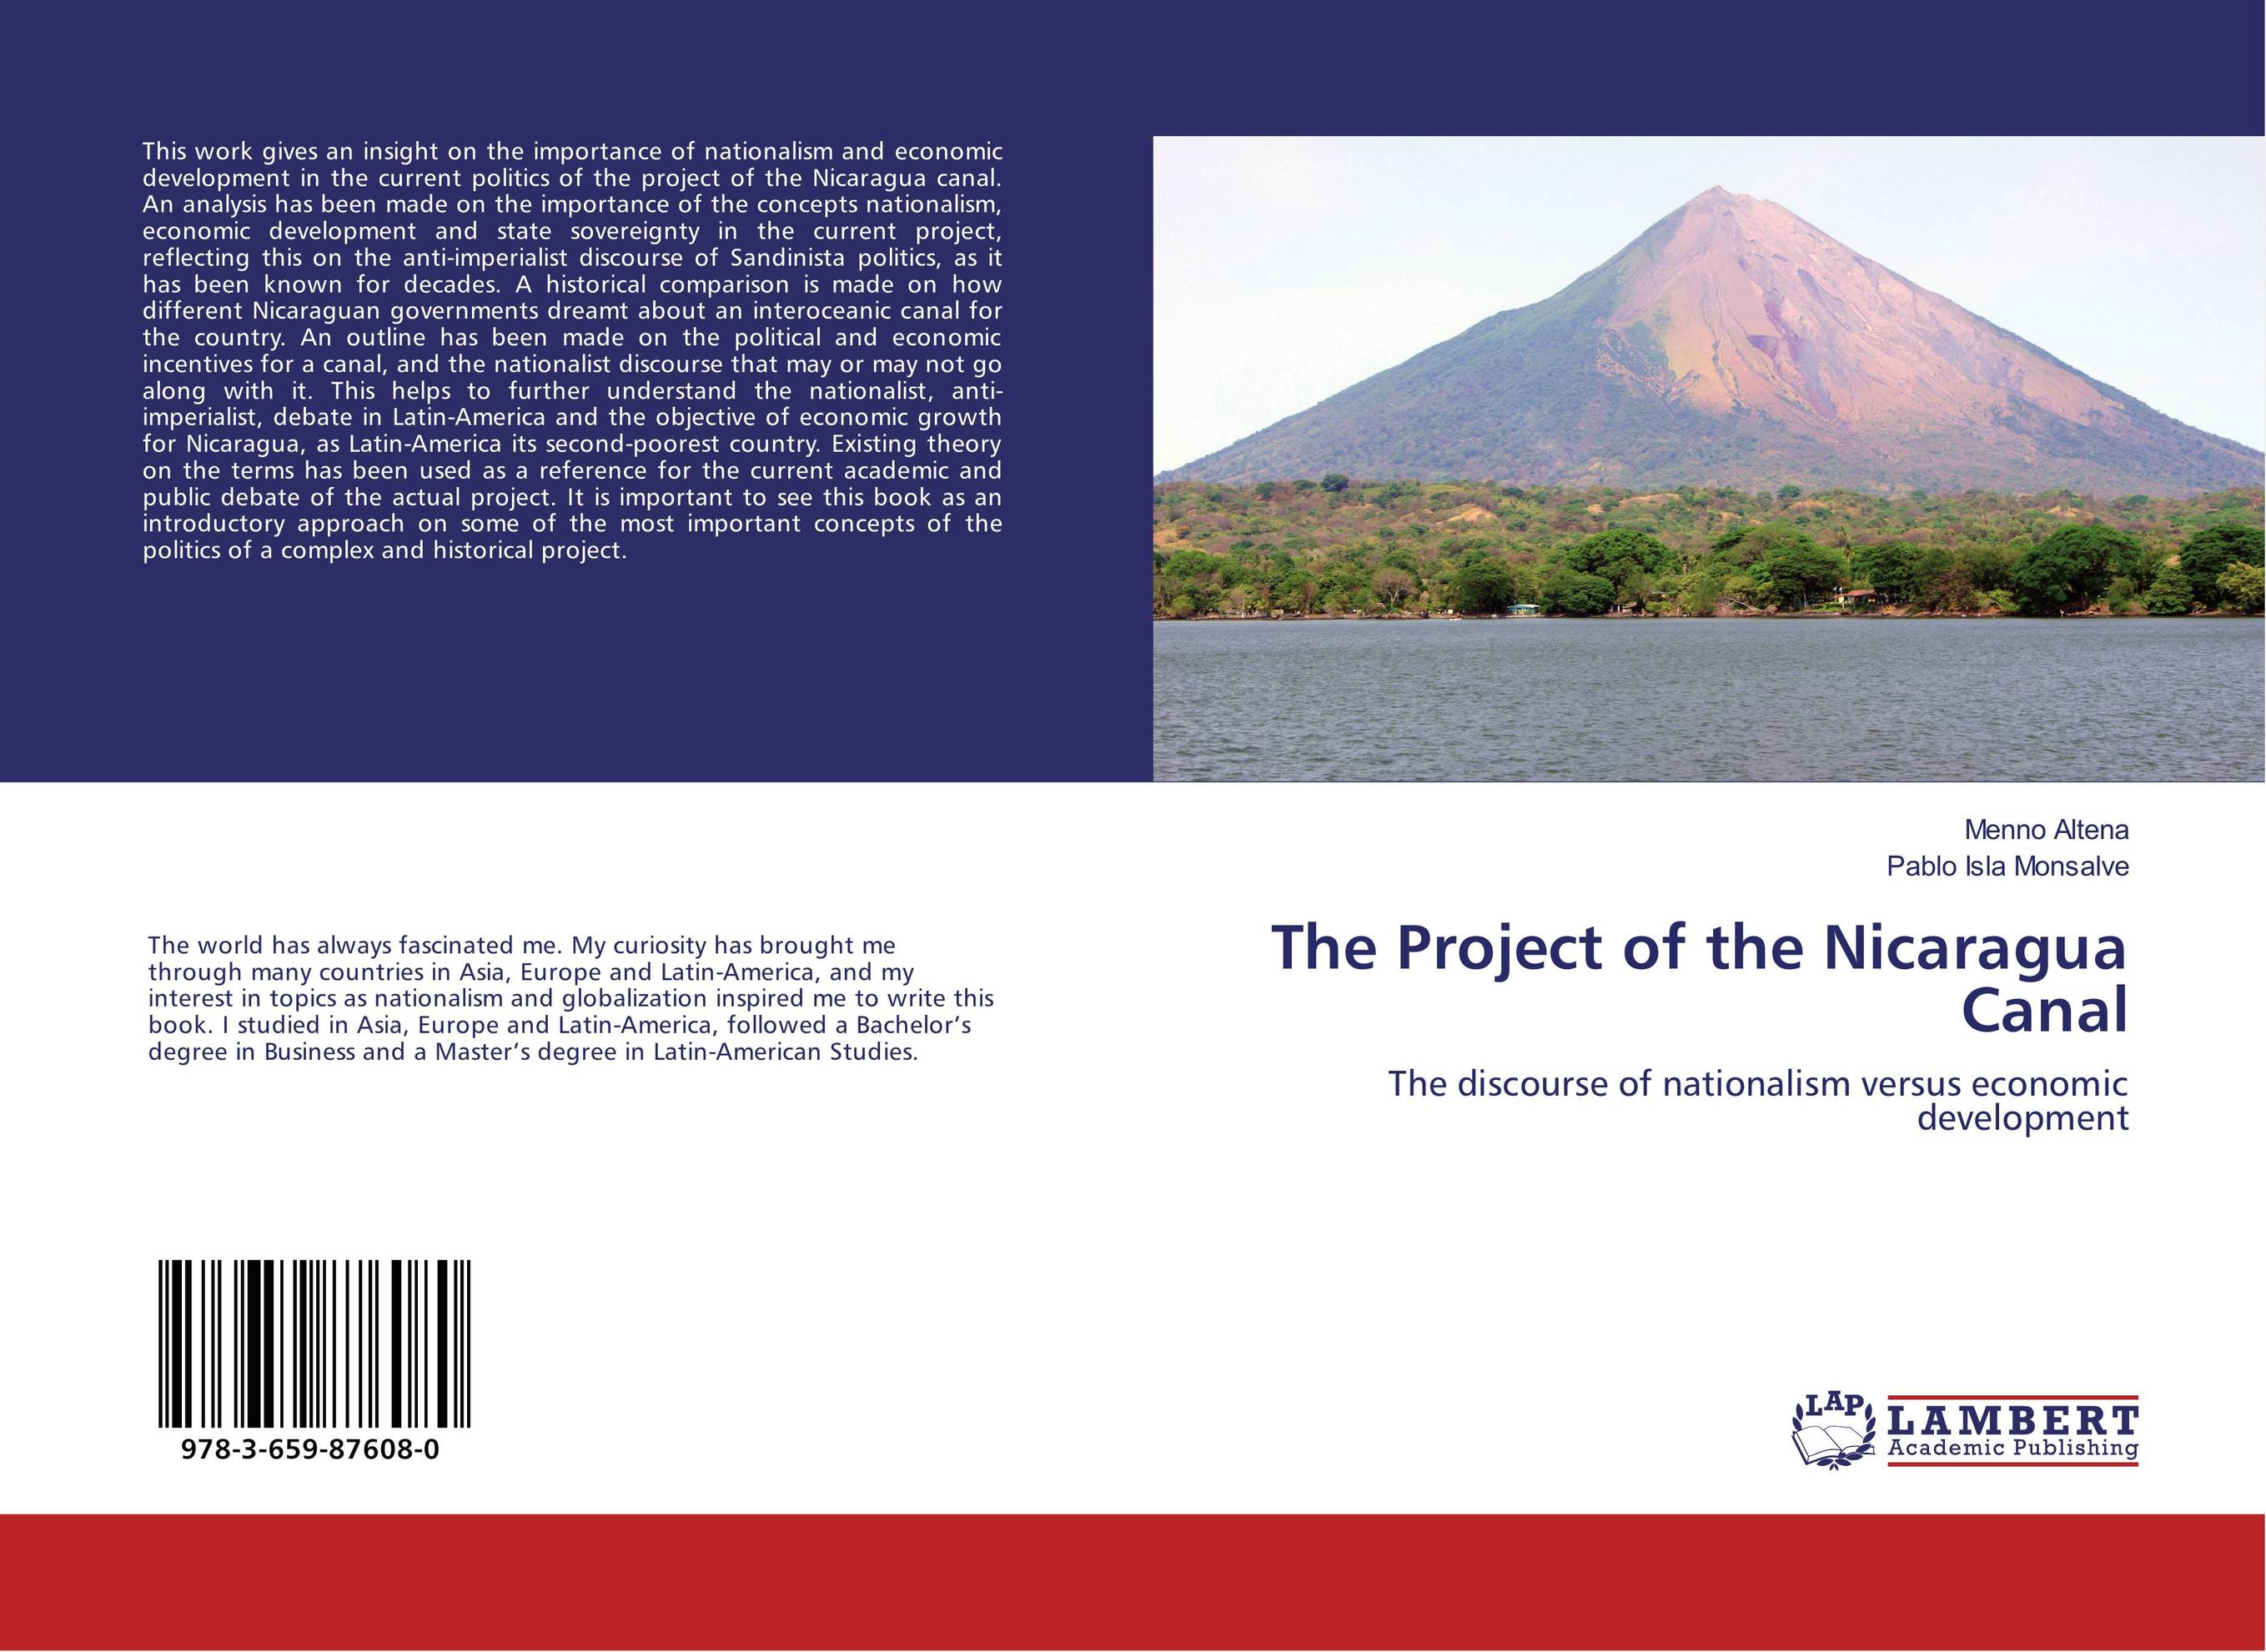 The Project of the Nicaragua Canal root and canal morphology of third molar